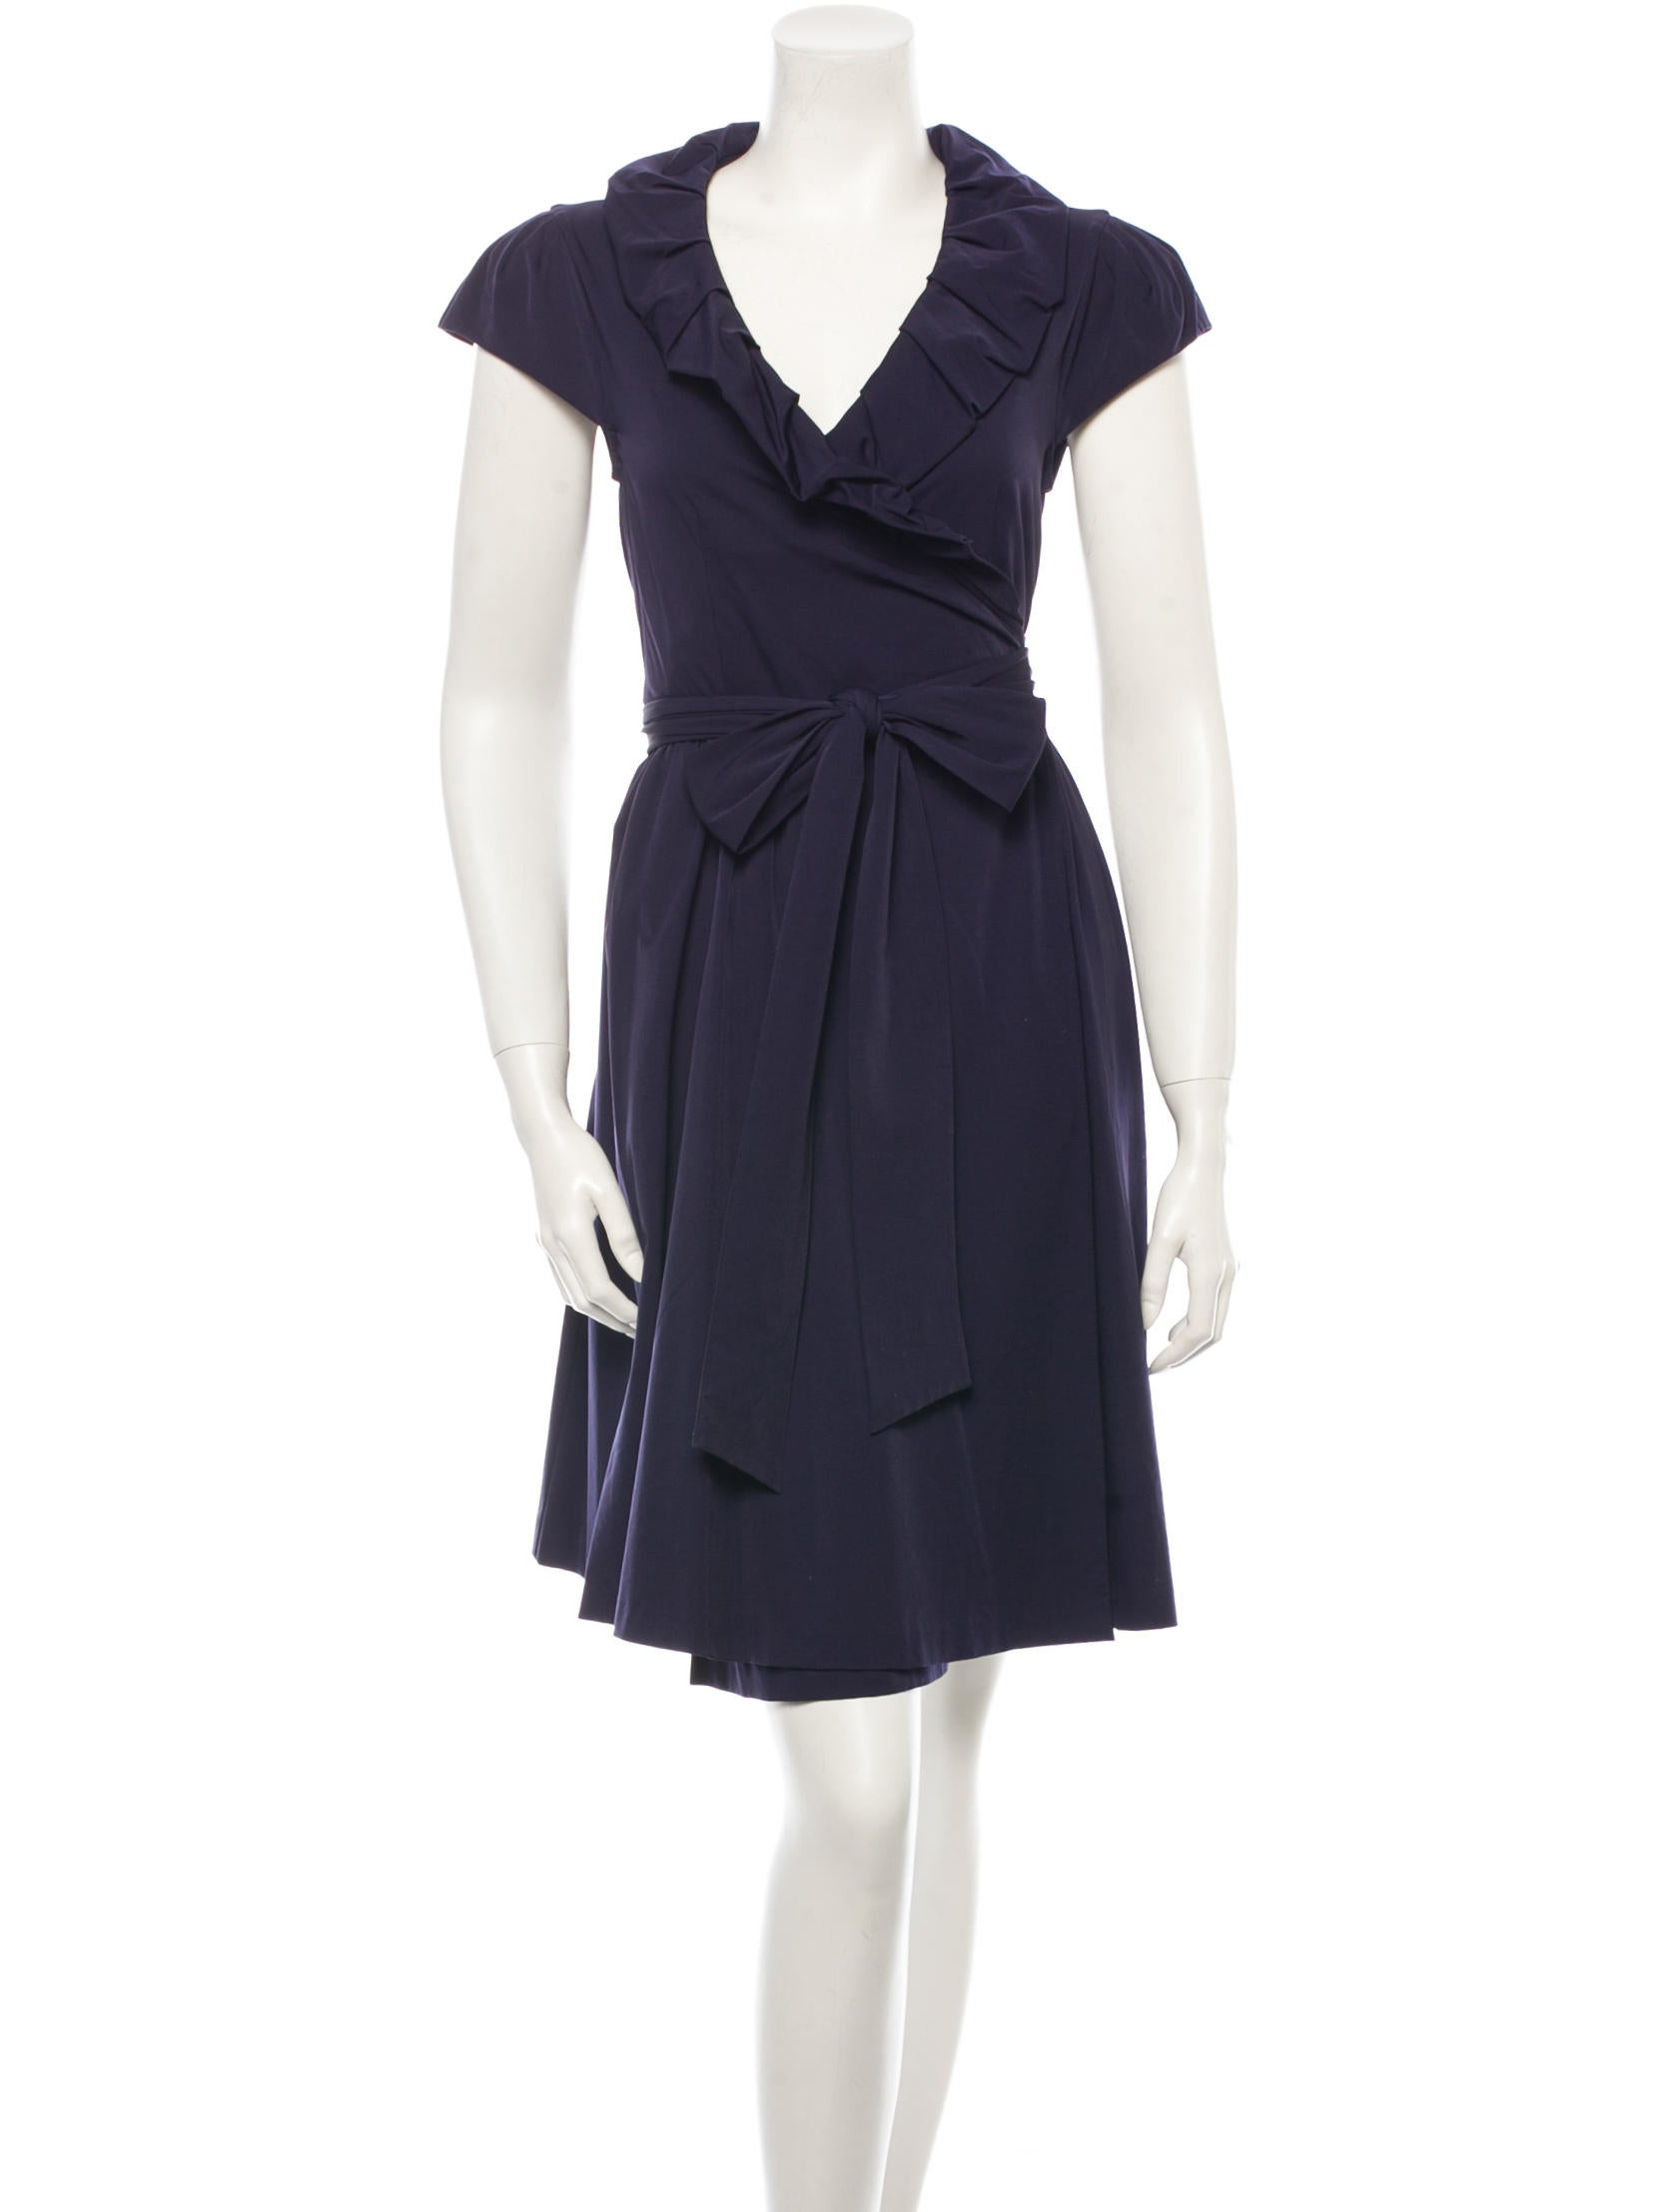 Diane von furstenberg wrap dress dresses wdi42596 for Diane von furstenberg clothes